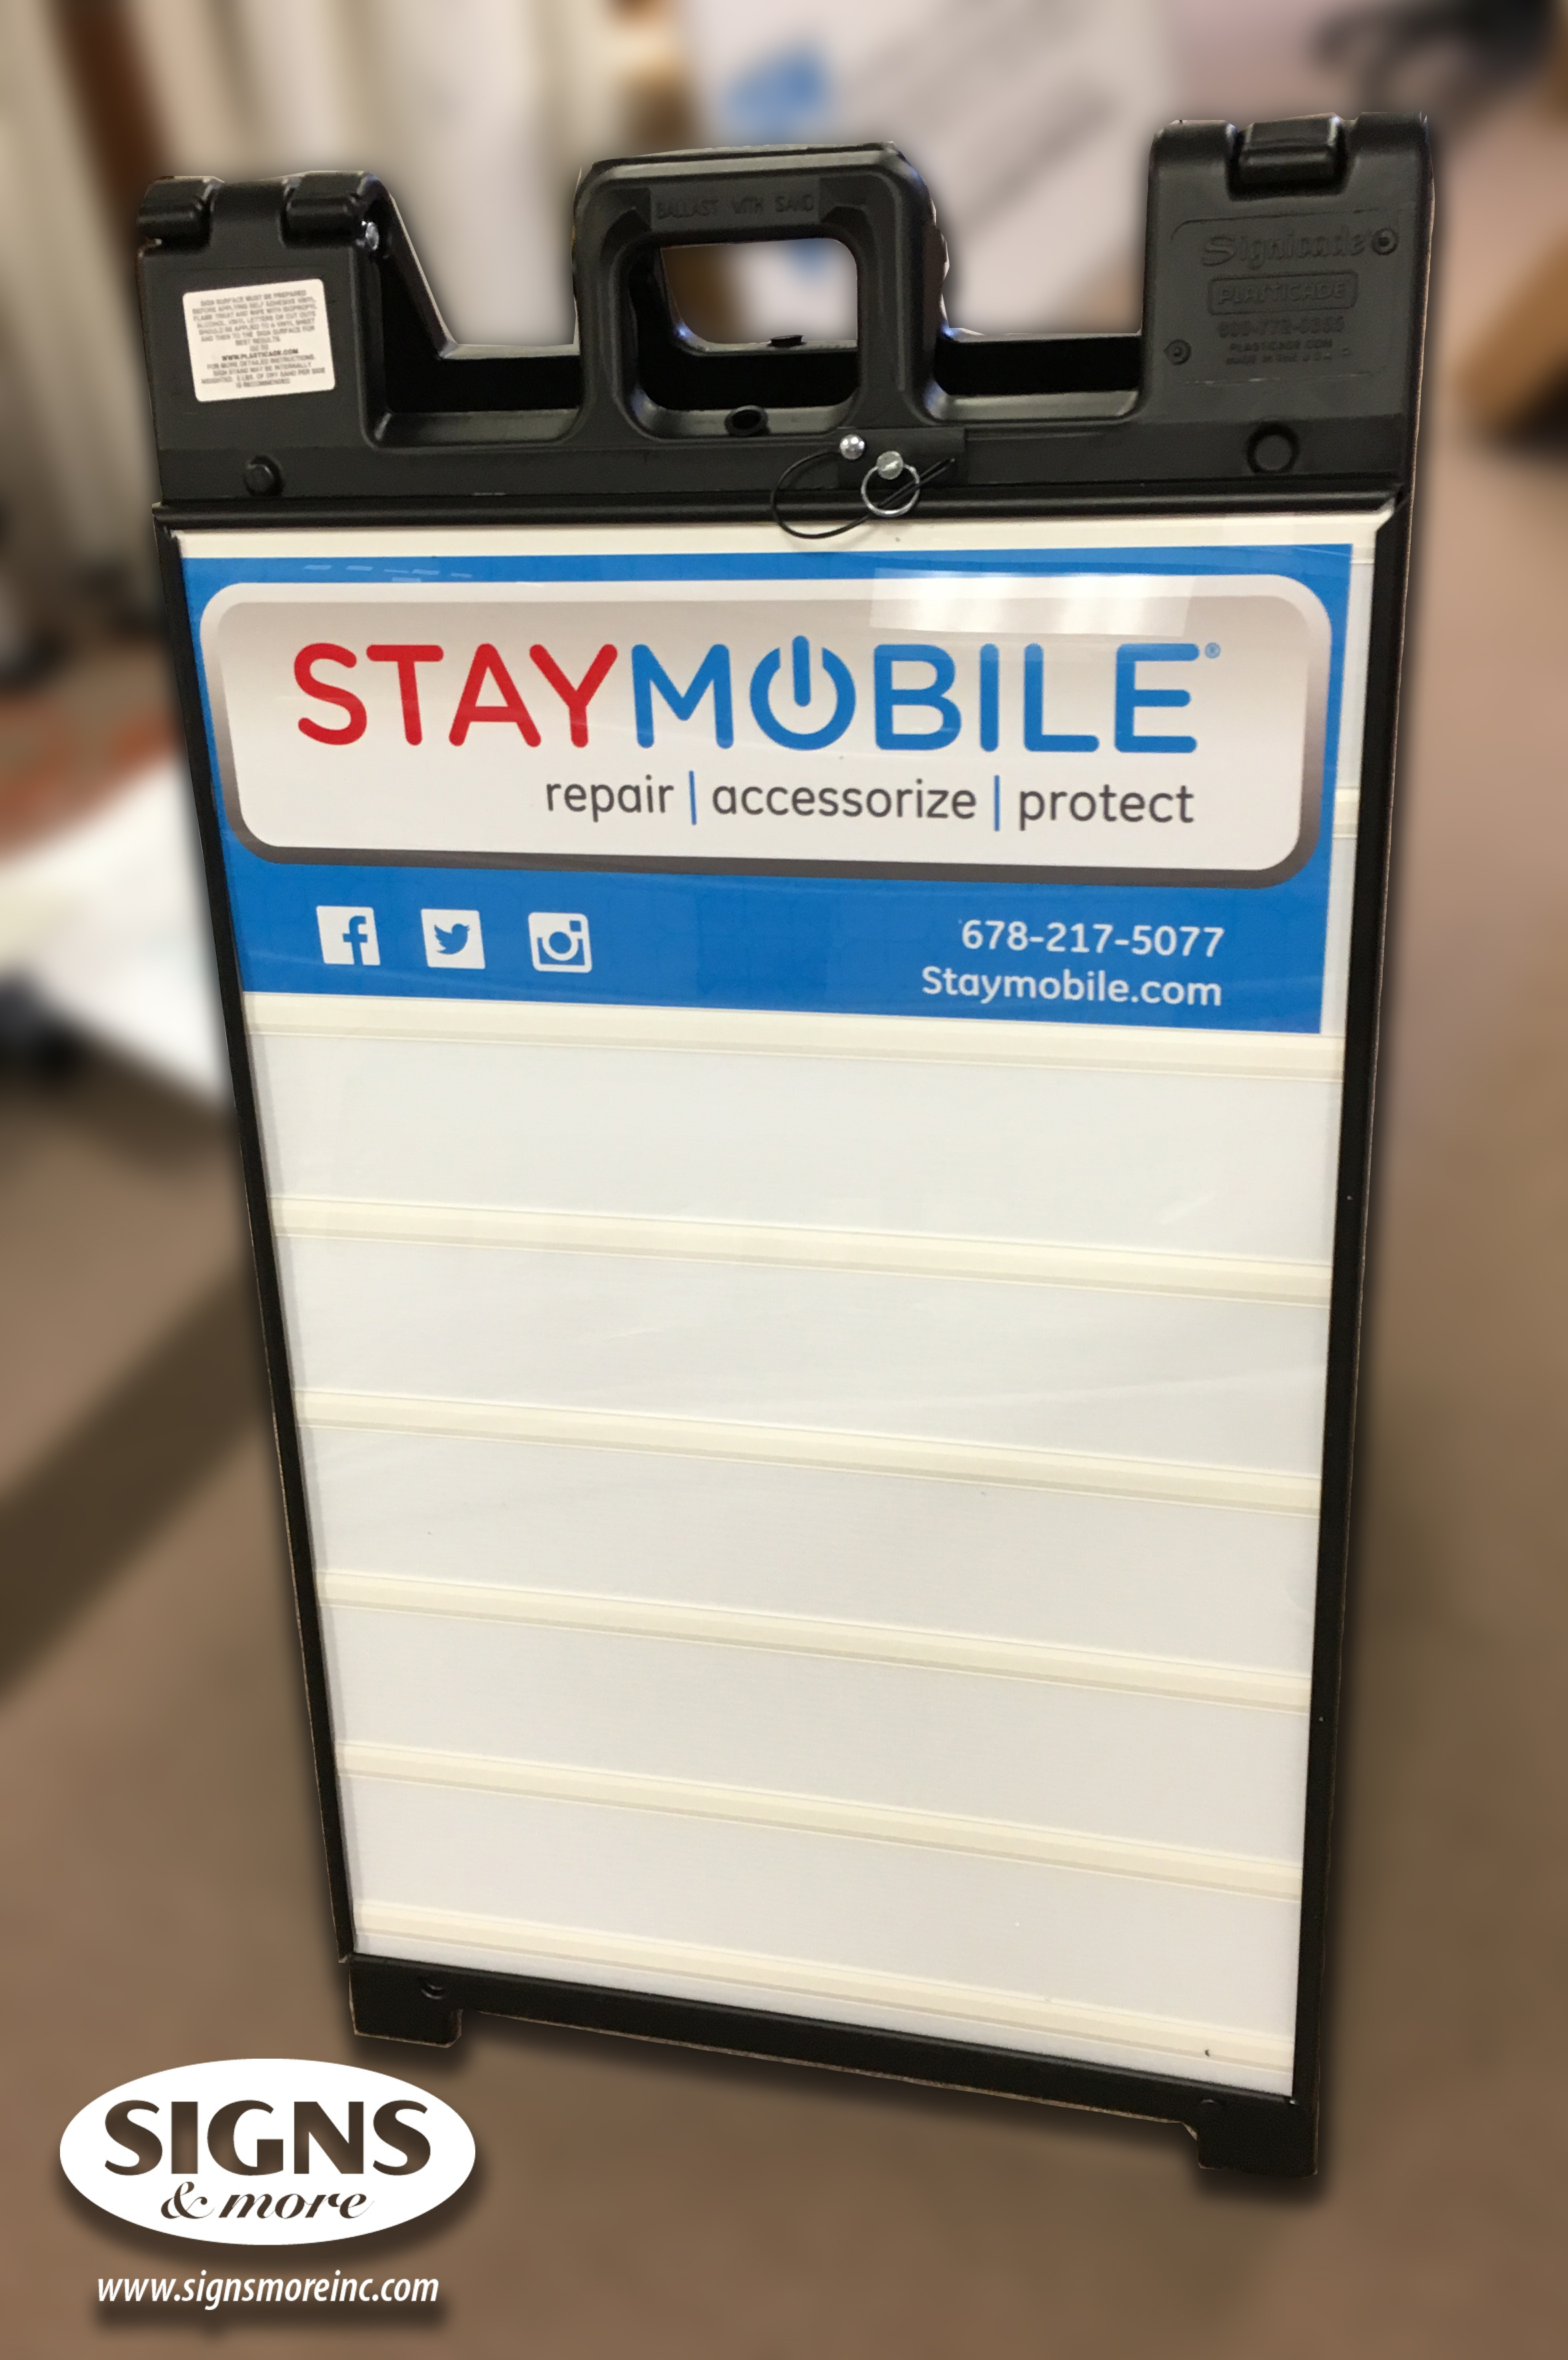 Stay Mobile - A Frame Sign - Changeable Letter Sign (2a).jpg